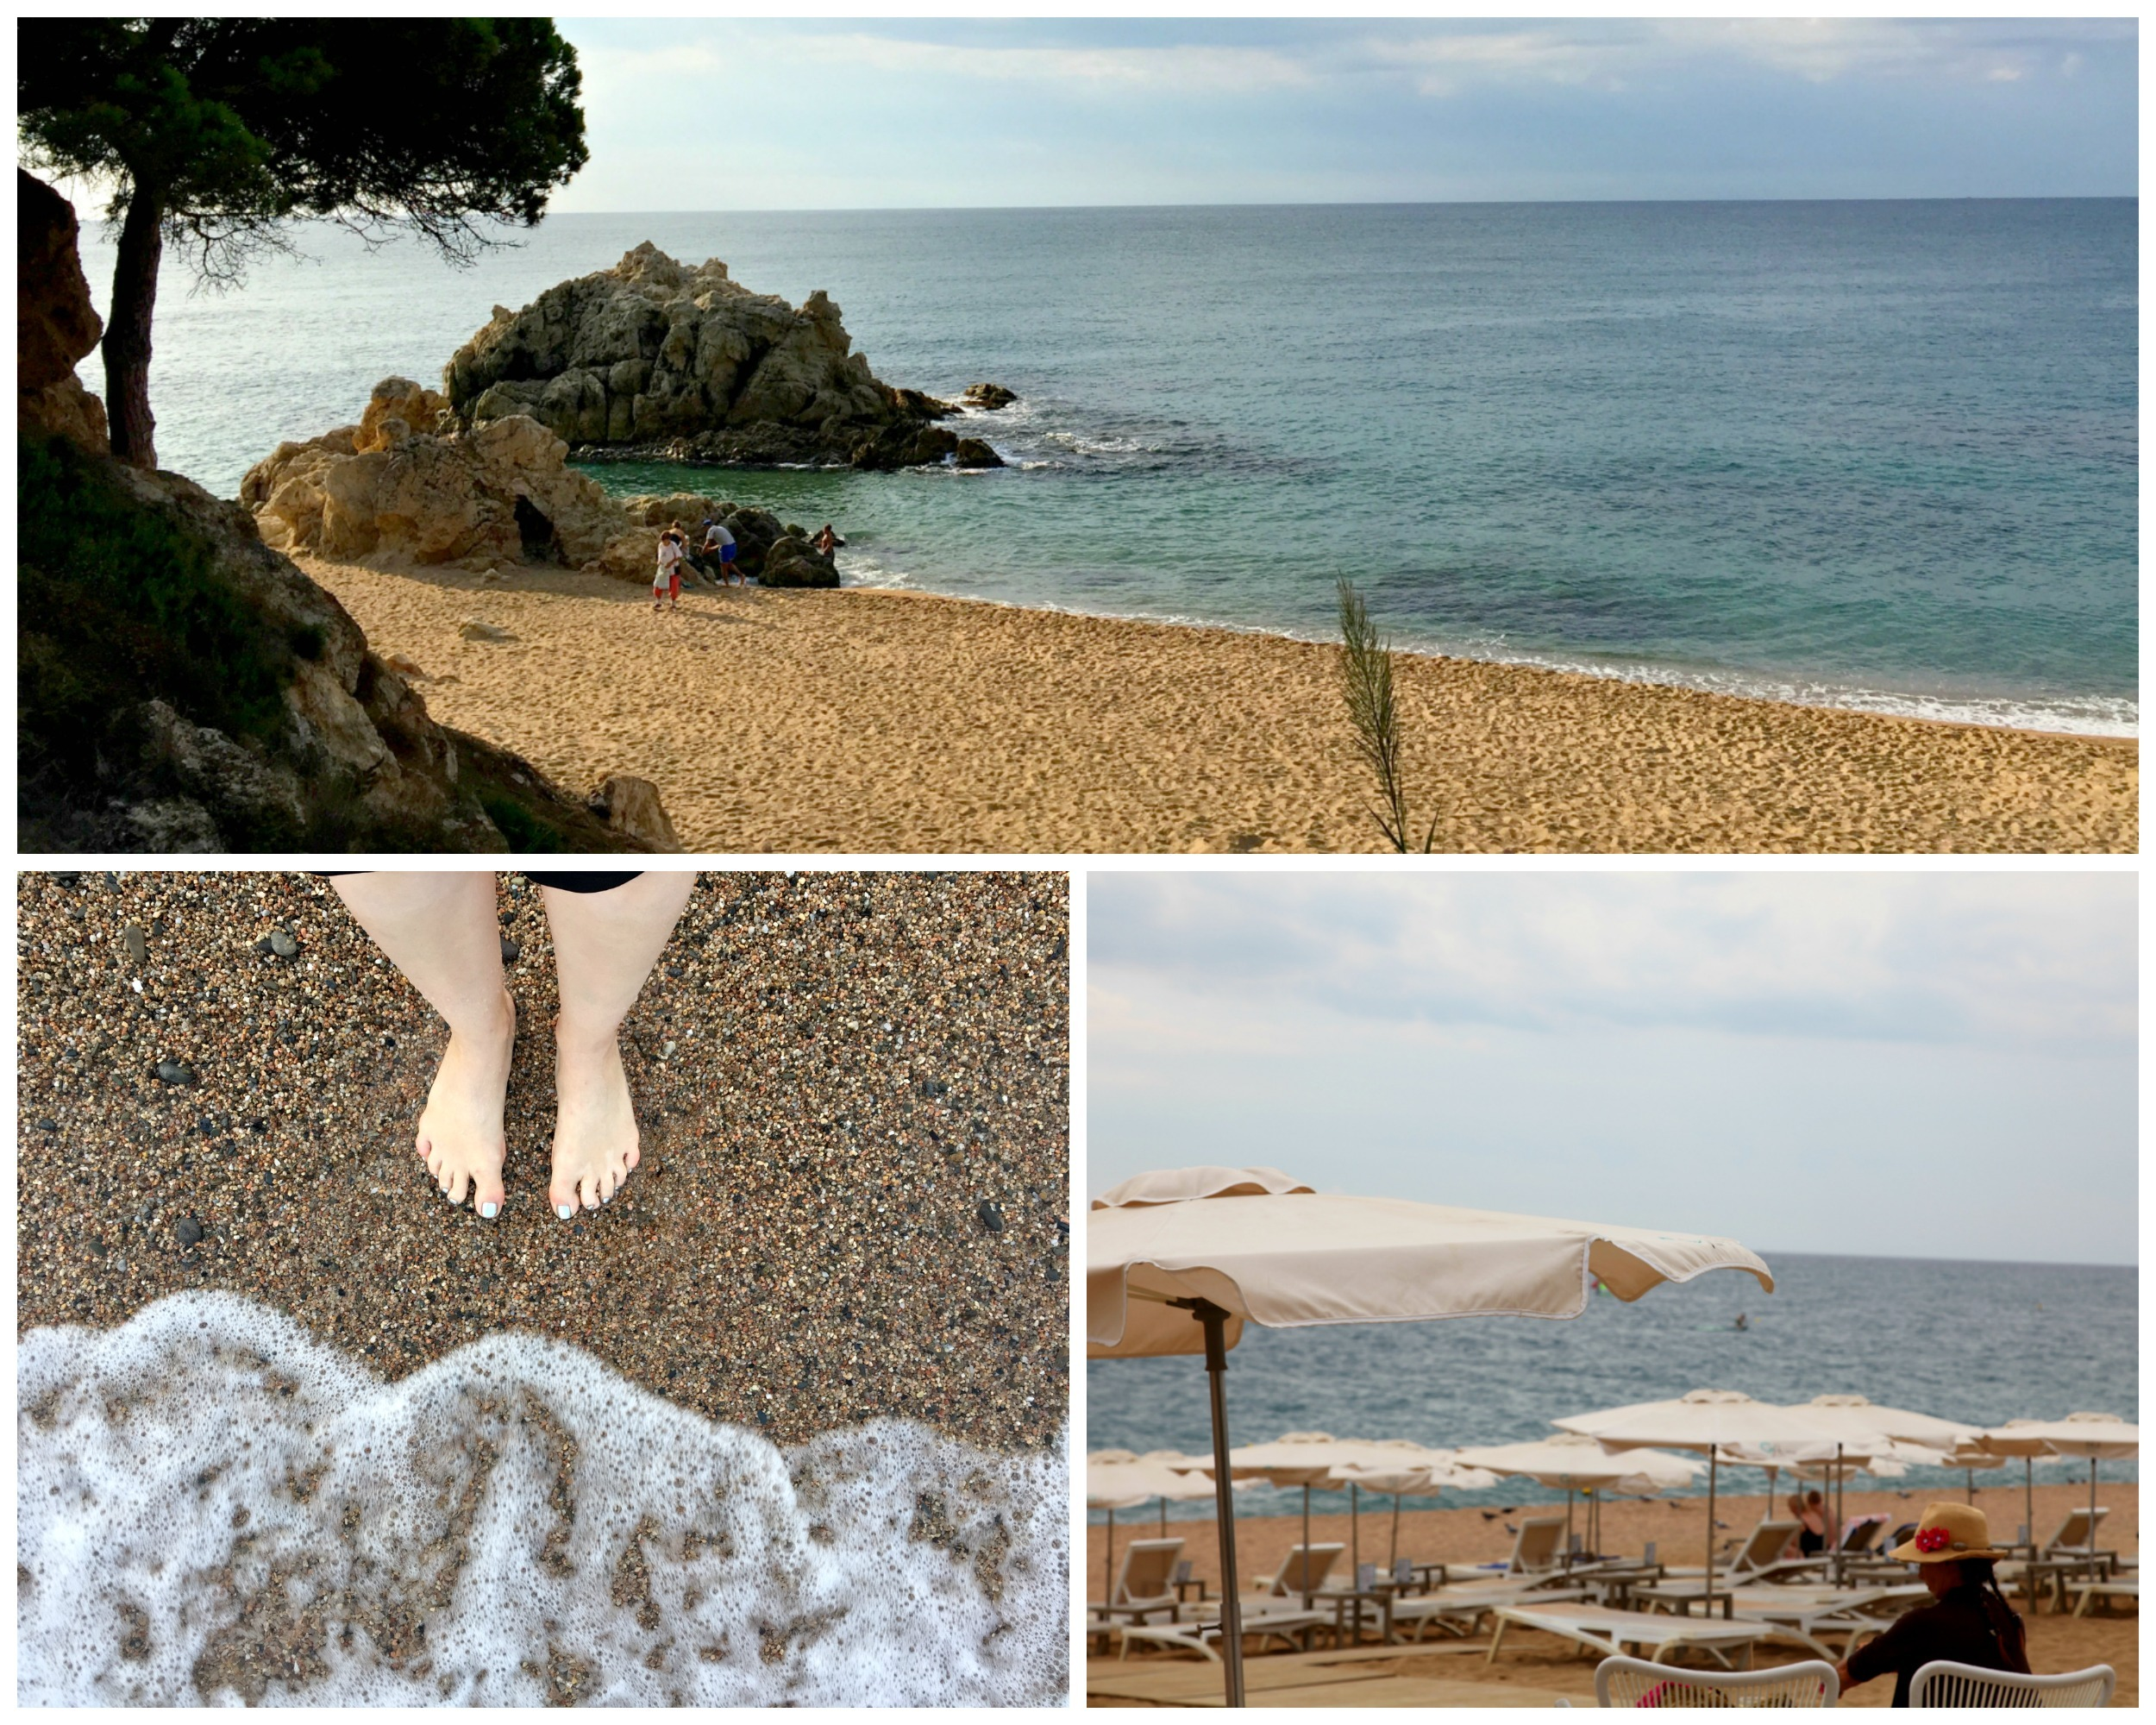 Costa Barcelona beaches